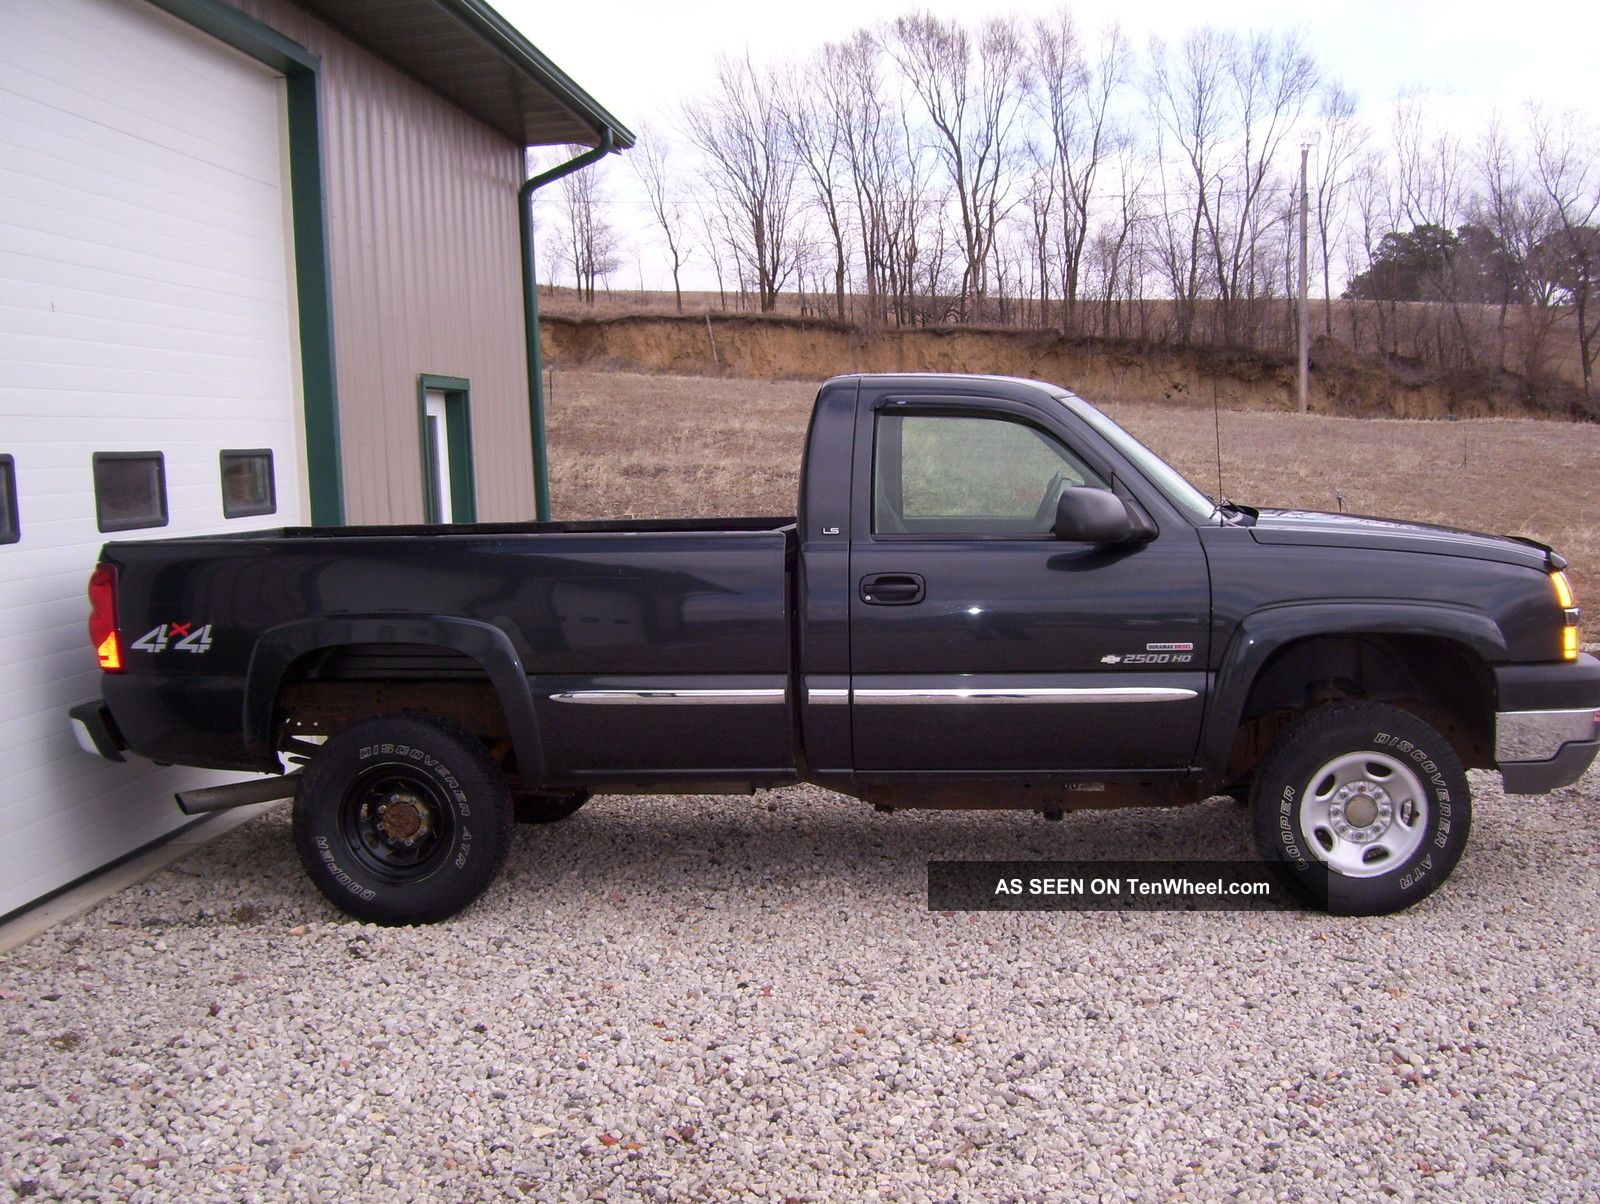 2003 2500Hd diesel duramax duty gmc heavy pickup truck #4